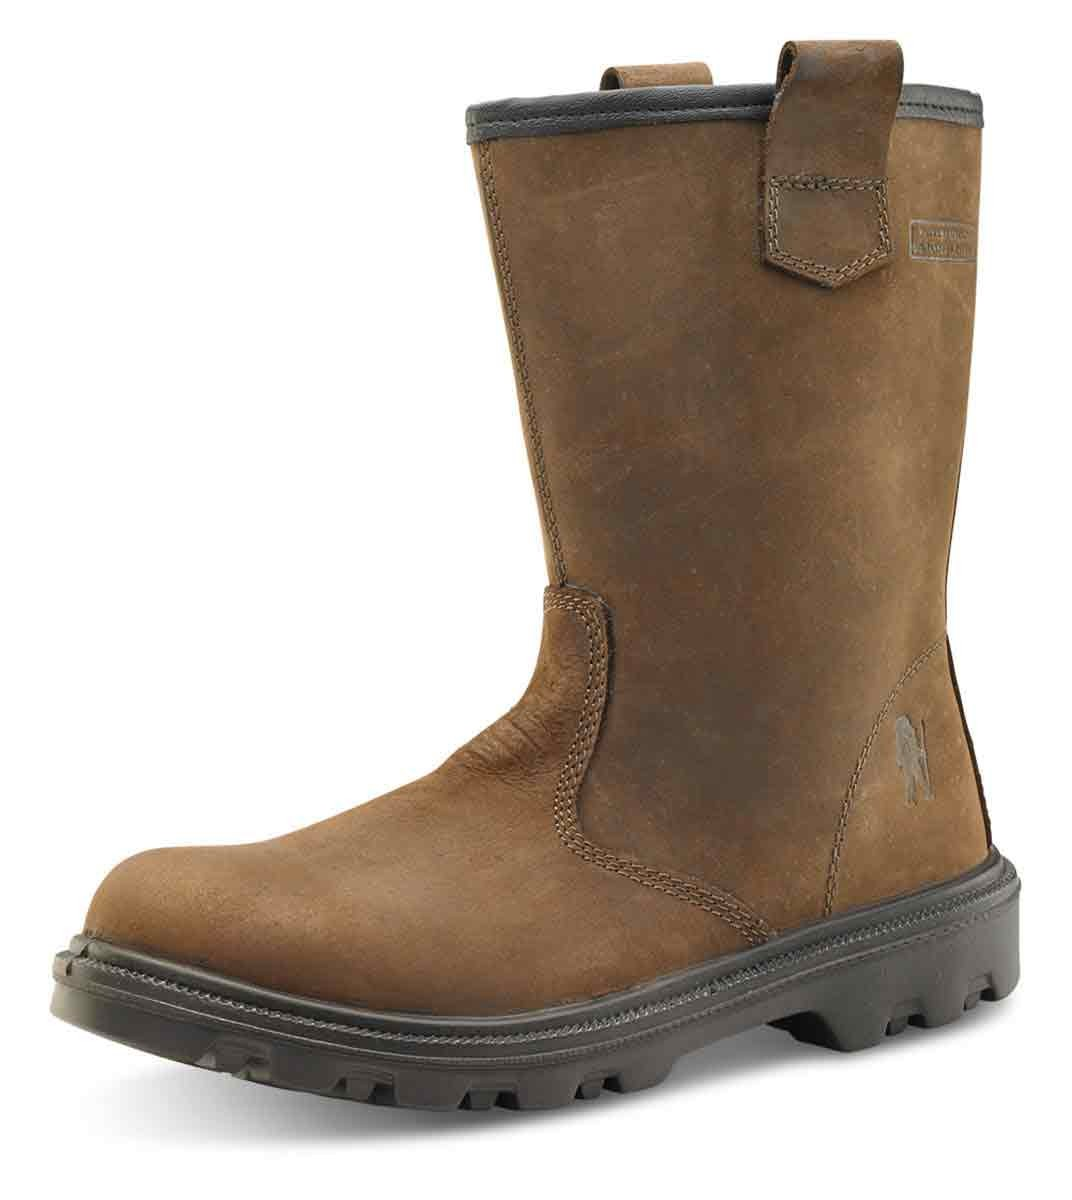 Pied Click Rigger Size Homme 10 Gris Trente 41 Sherpa Standard Boot OgFWIdxqw